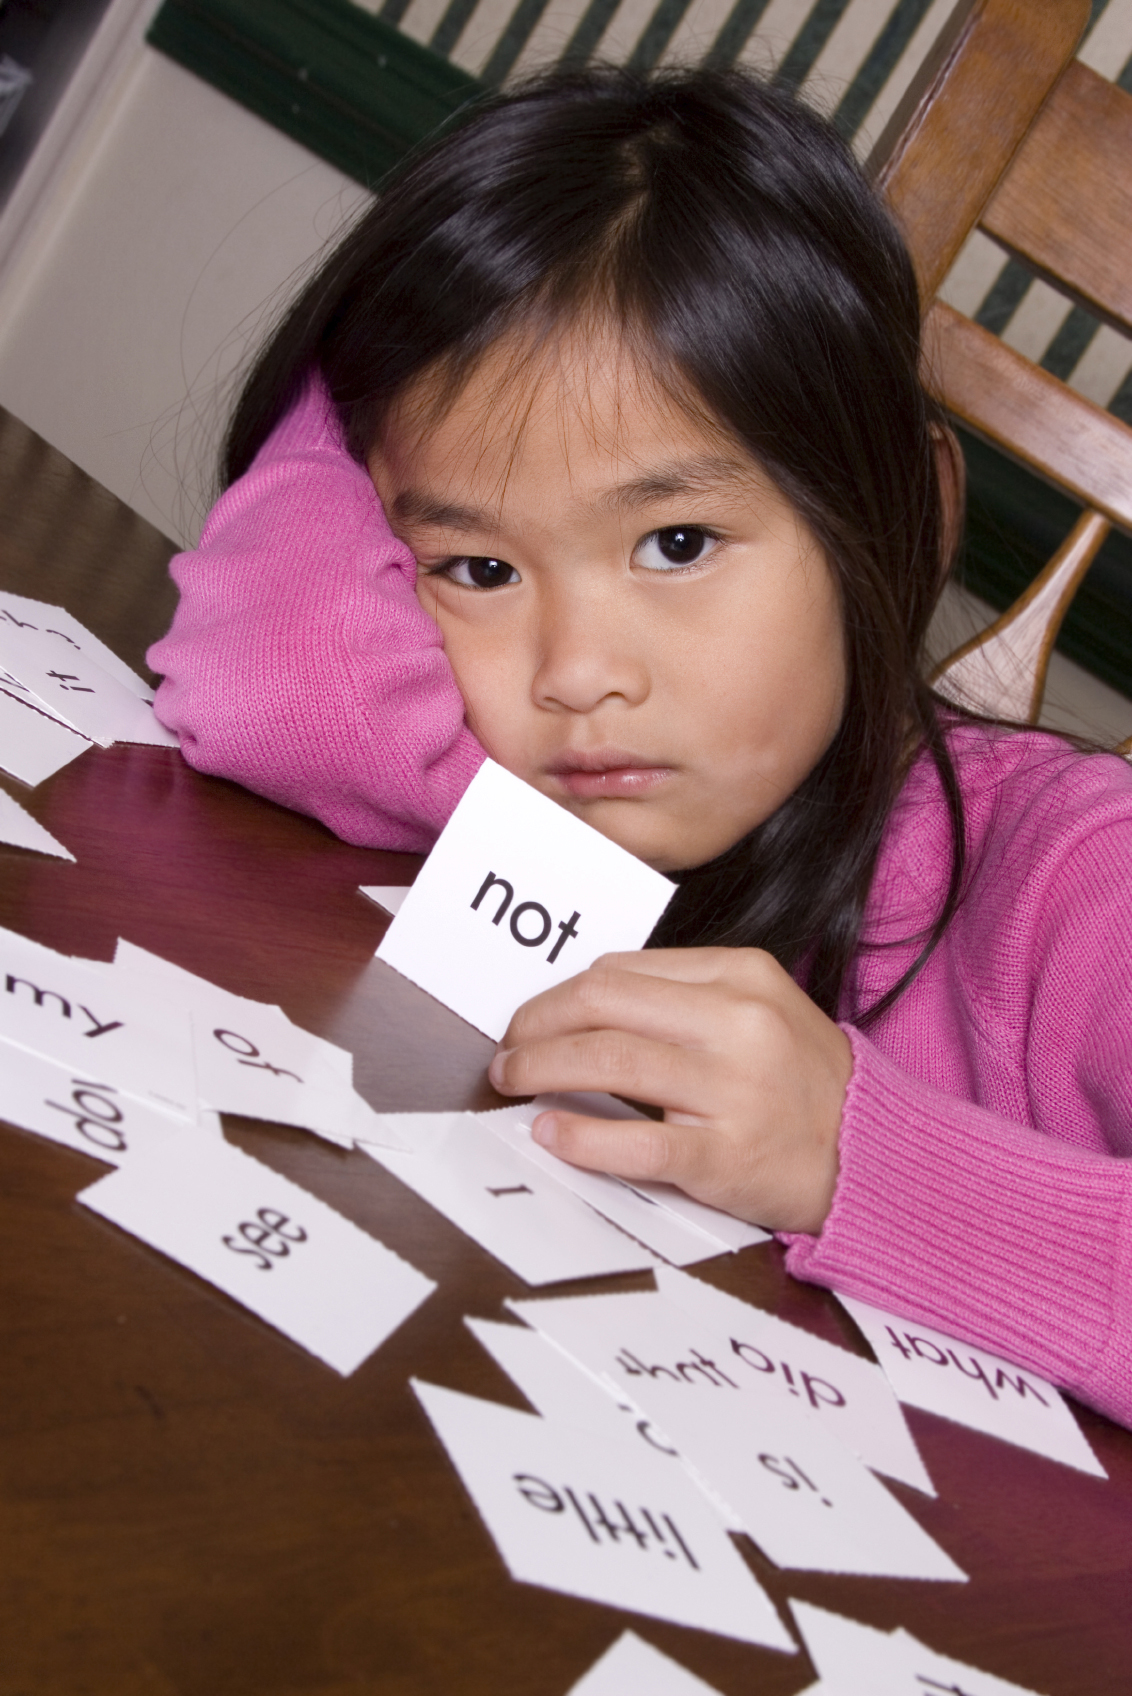 Sad young girl using flash cards learning vocabulary